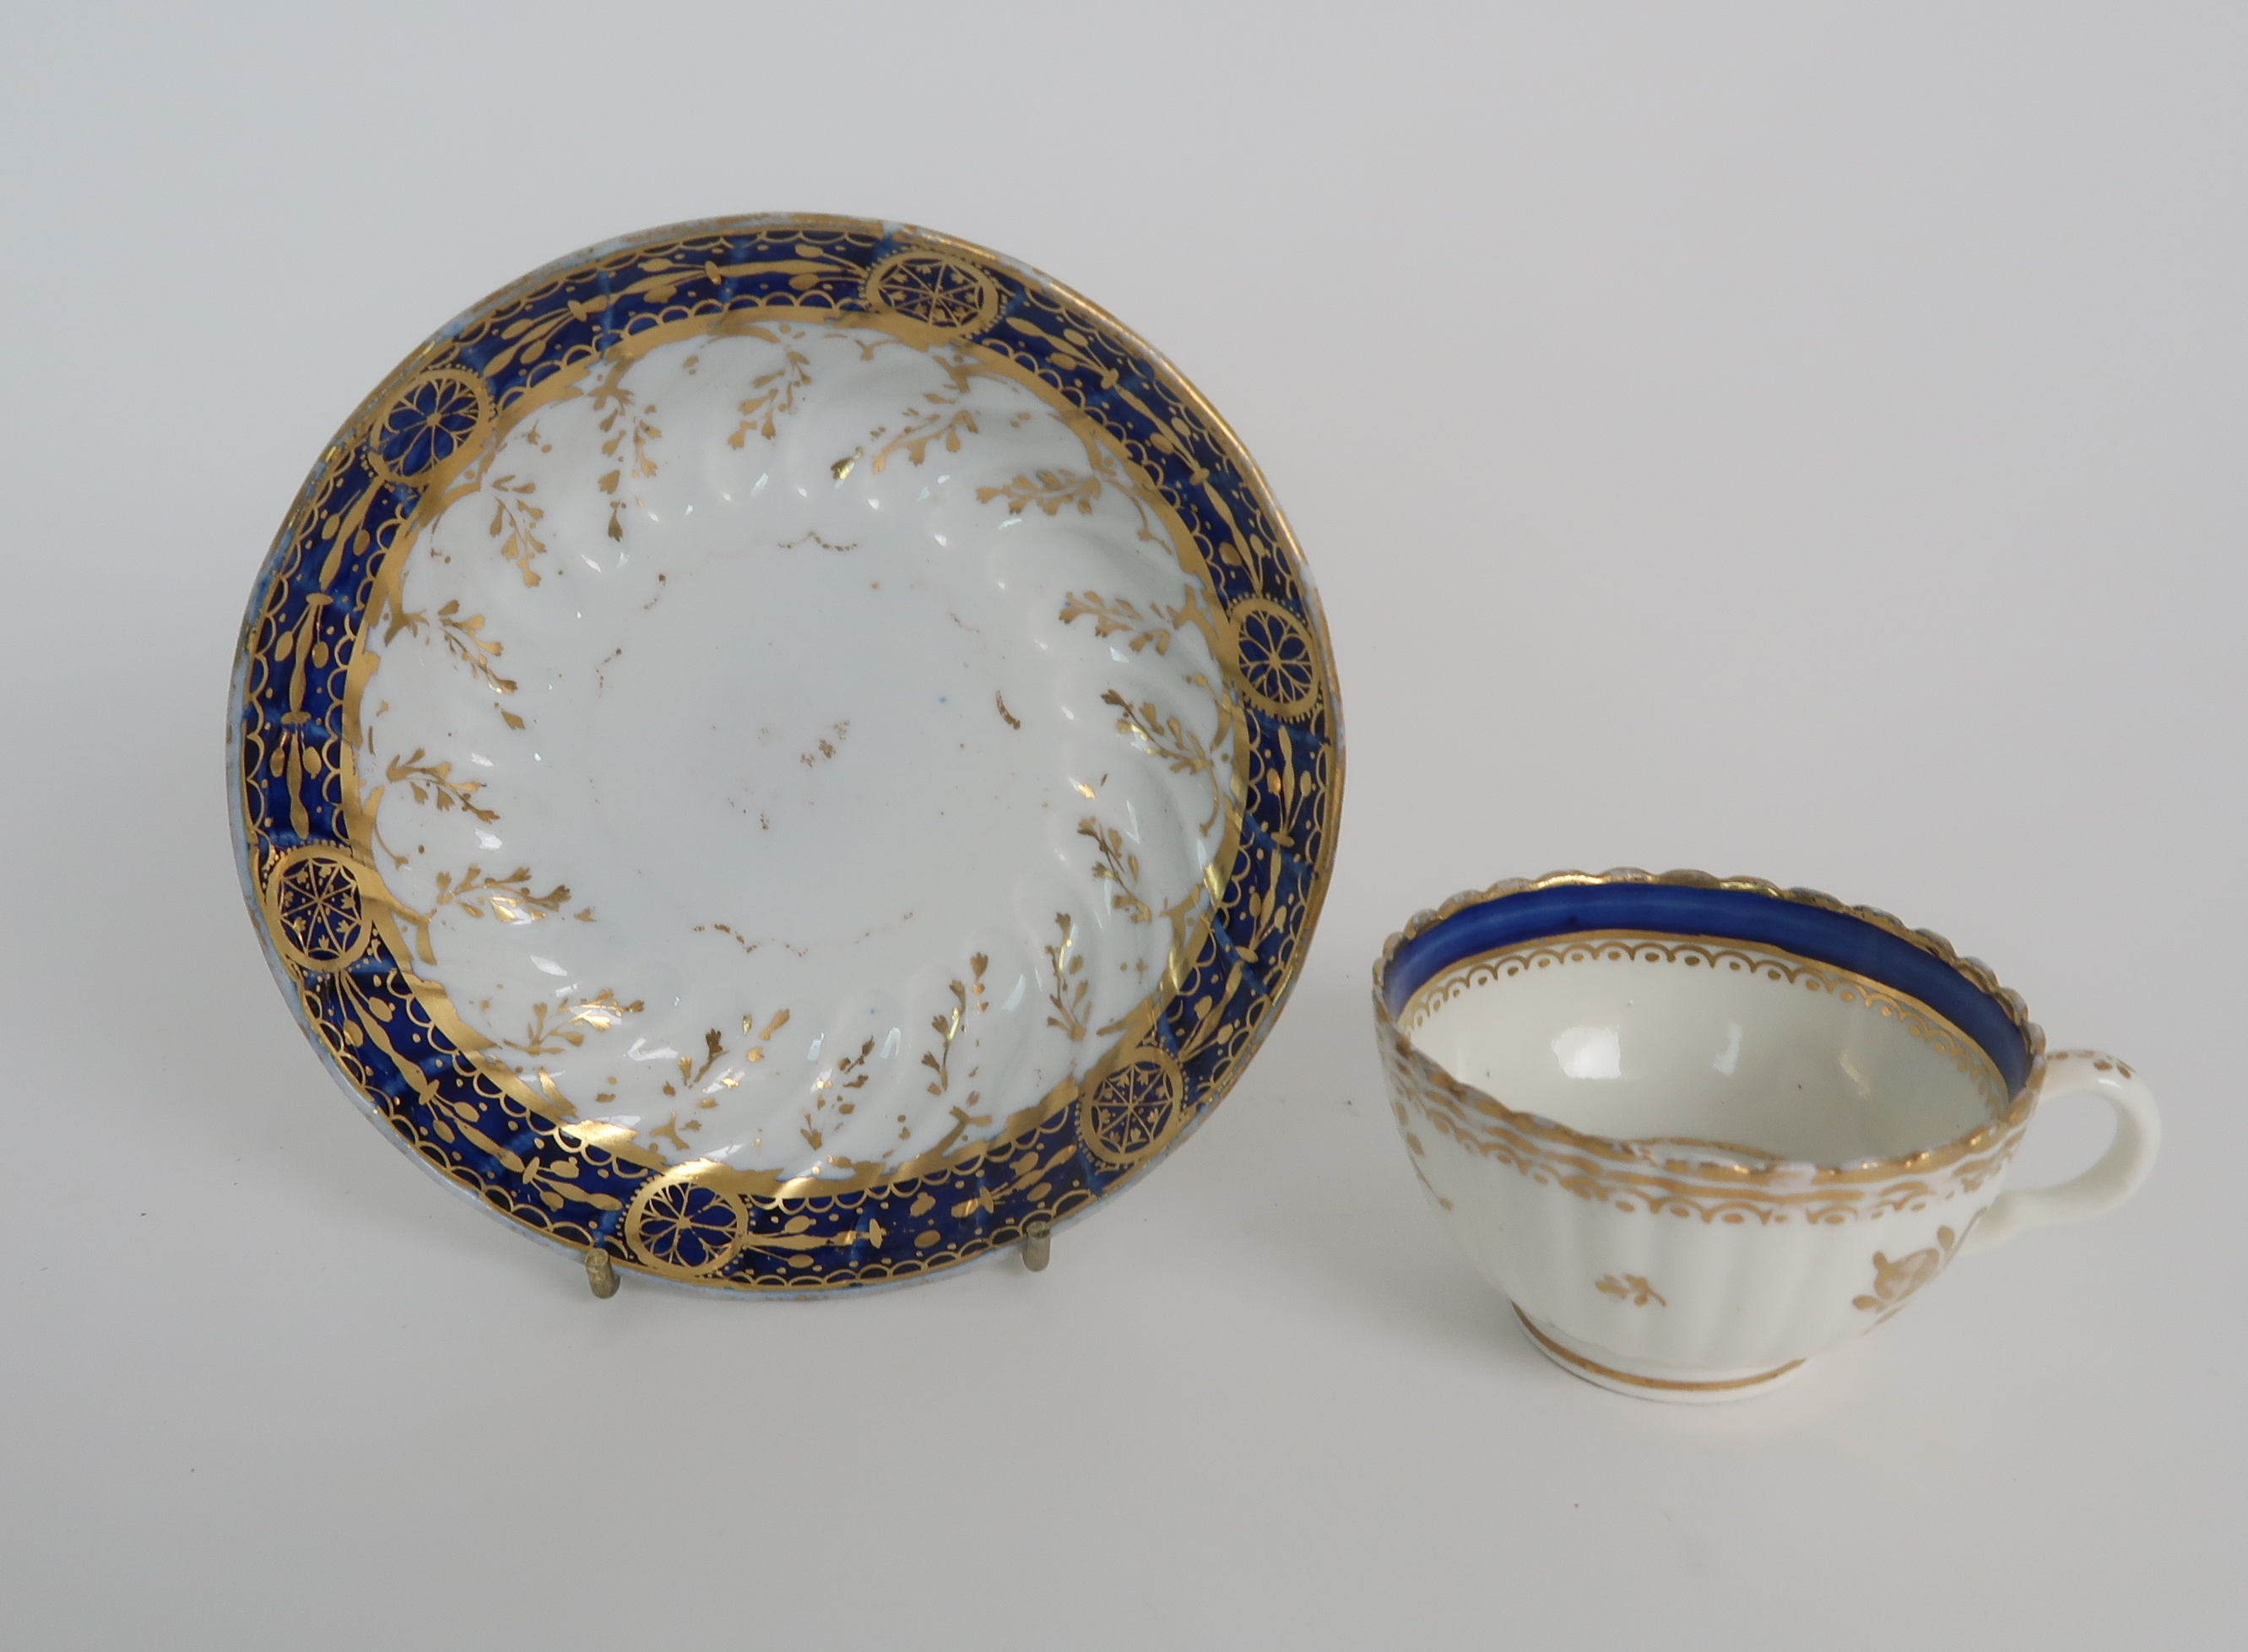 A COLLECTION OF 19TH CENTURY ENGLISH BLUE AND GILT DECORATED TEA AND COFFEE WARES including a - Image 21 of 23